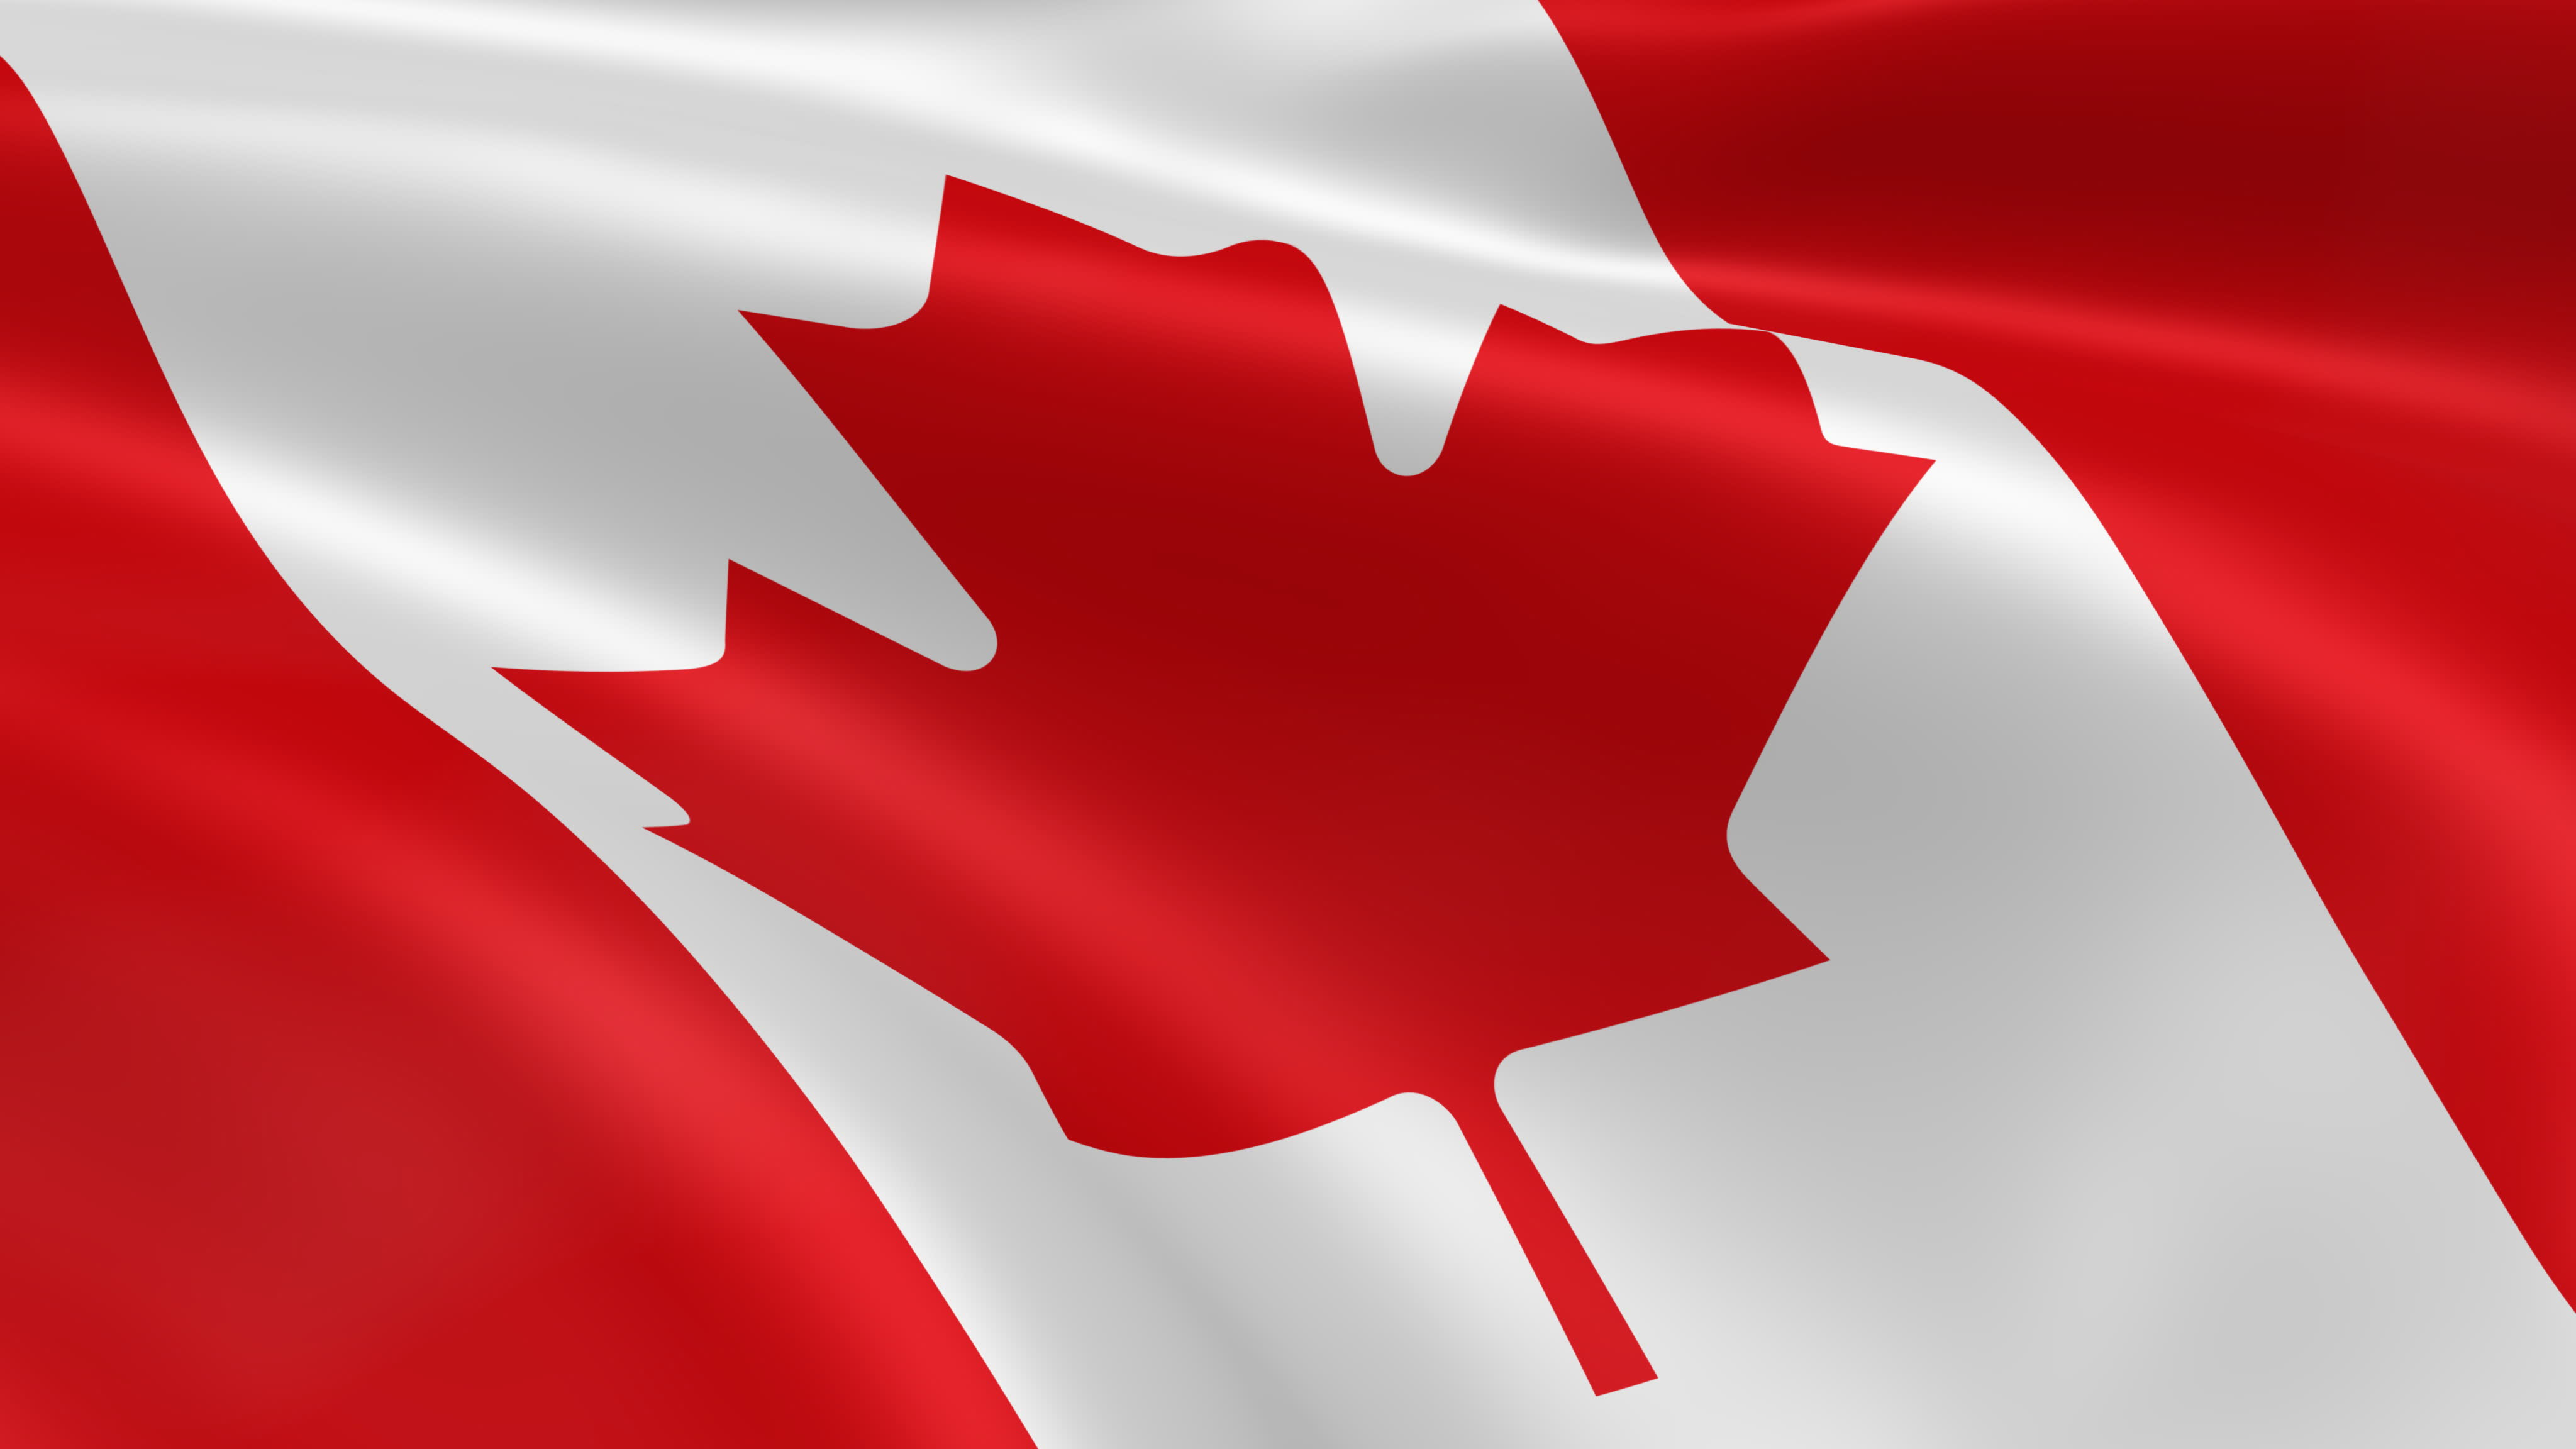 Remembrance Day - Canadian Flag